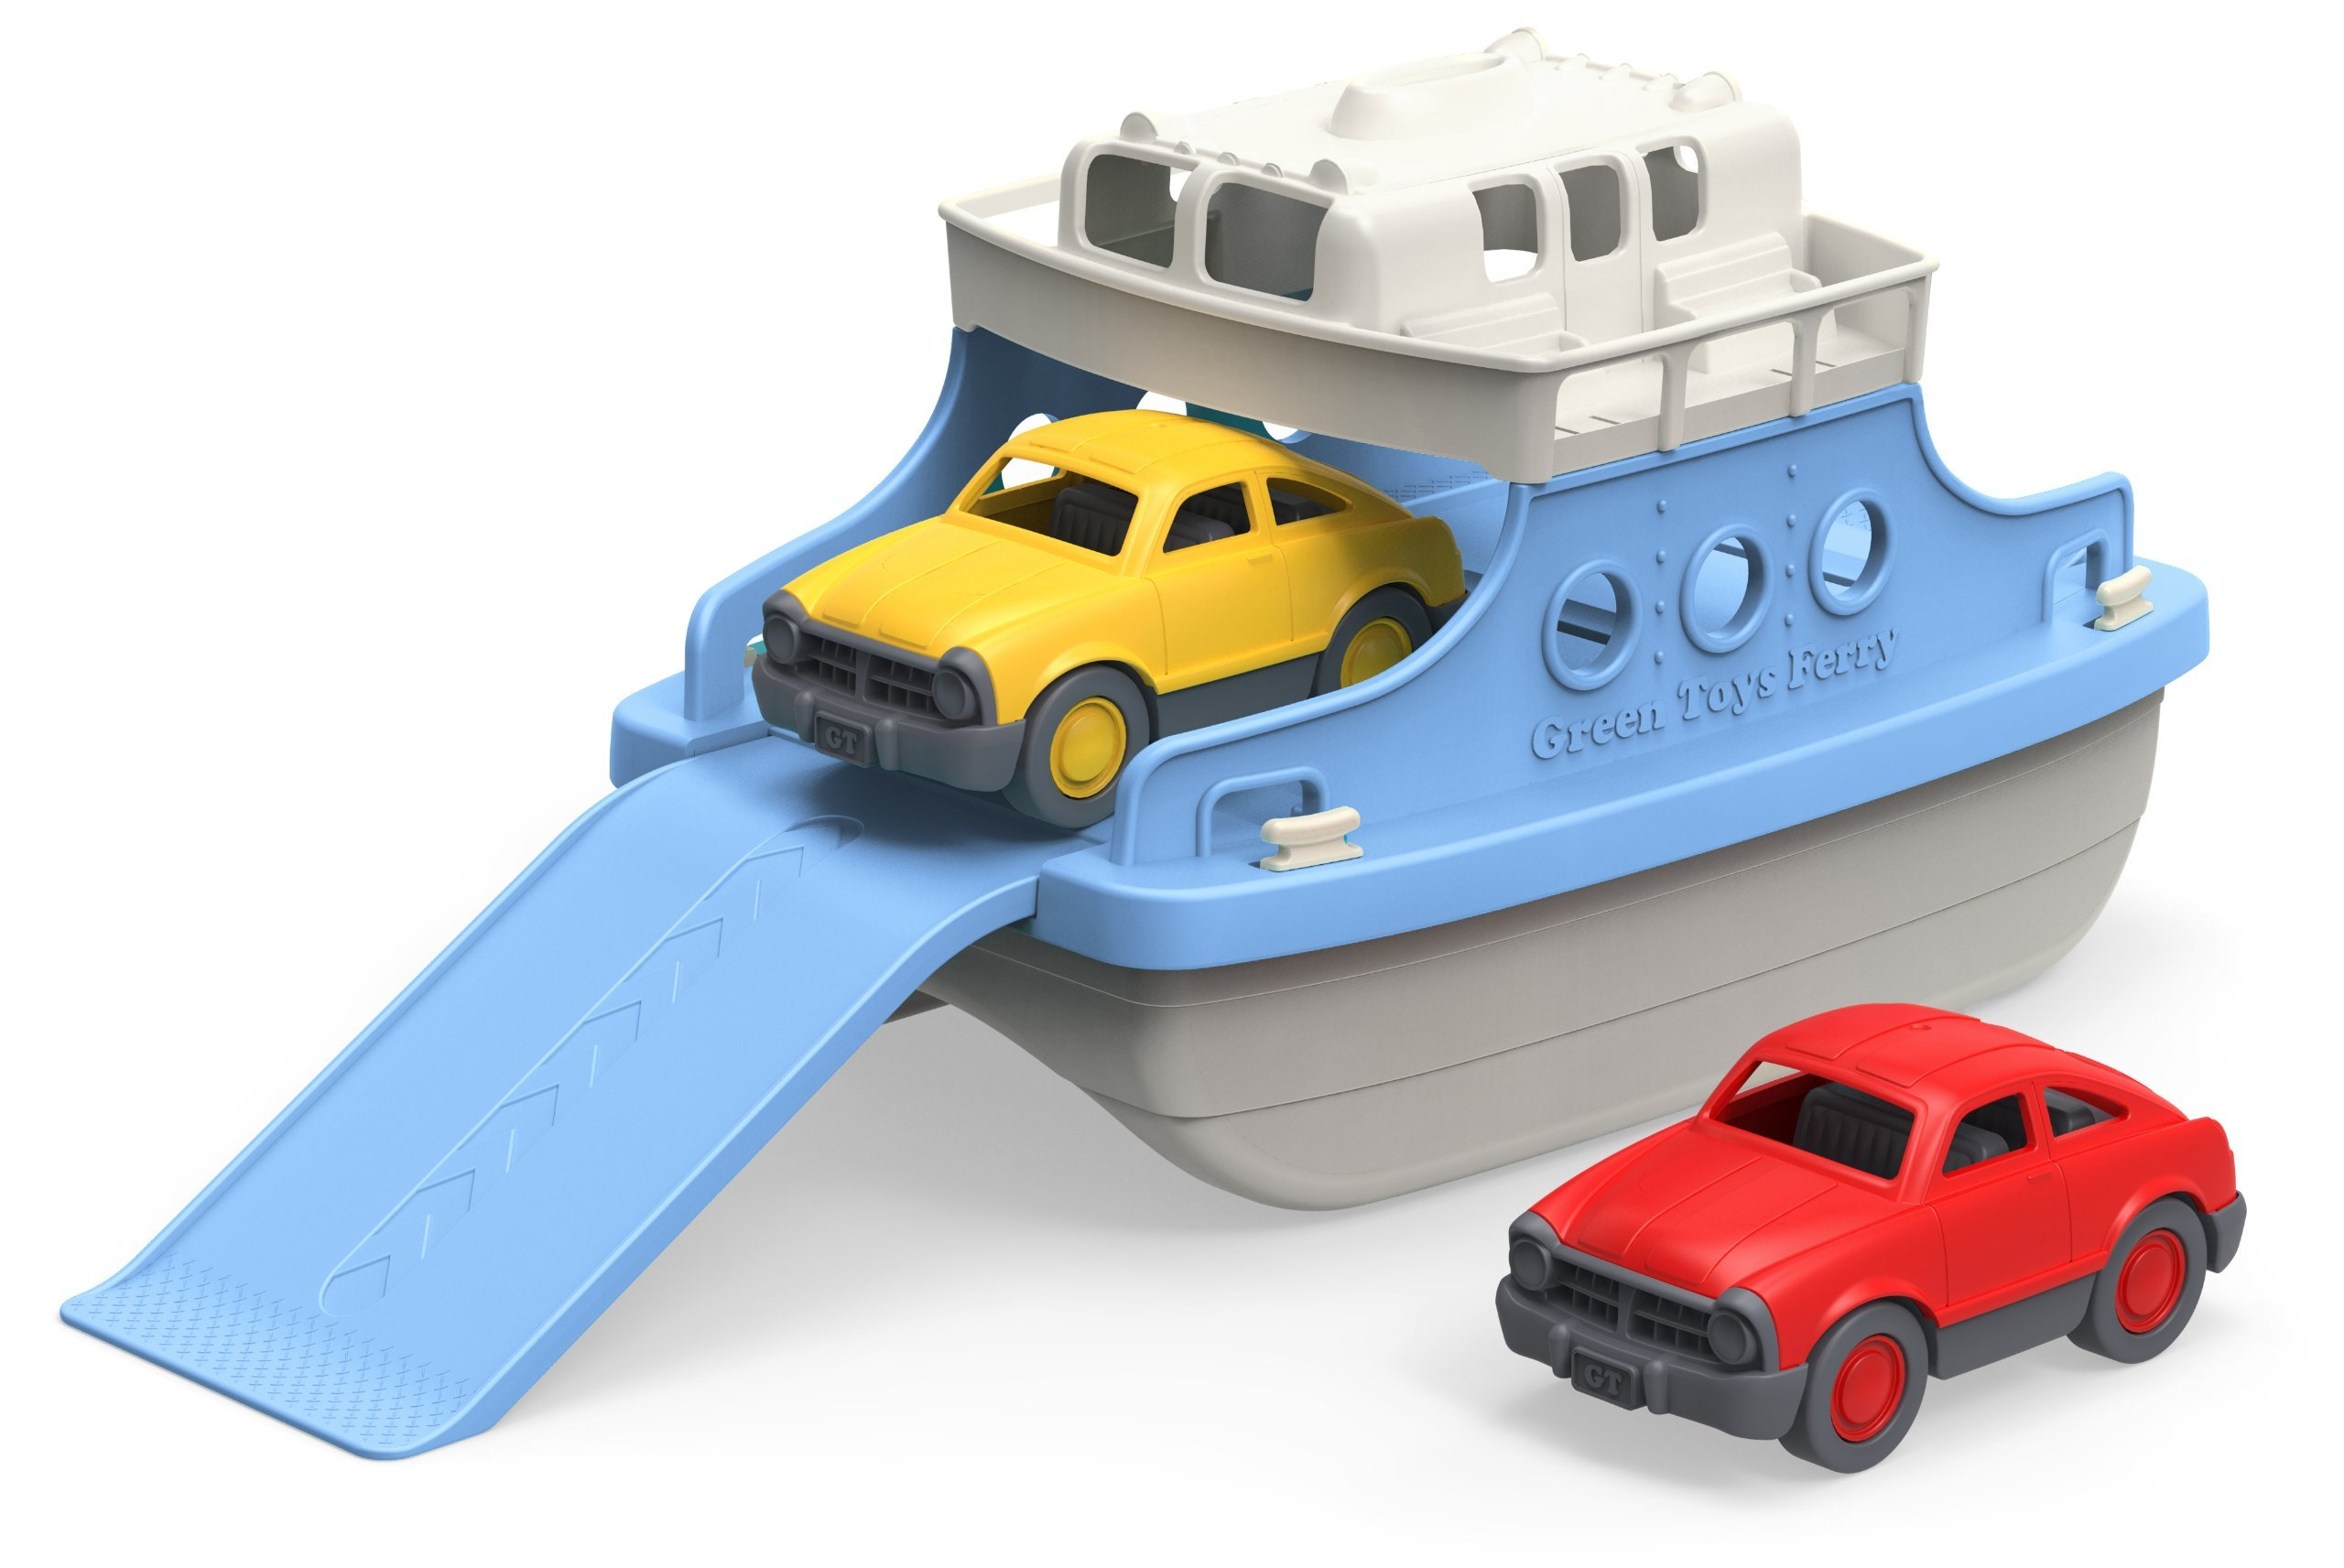 Green Toys Ferry Boat with Mini Cars Bathtub Toy, Blue/White, Standard